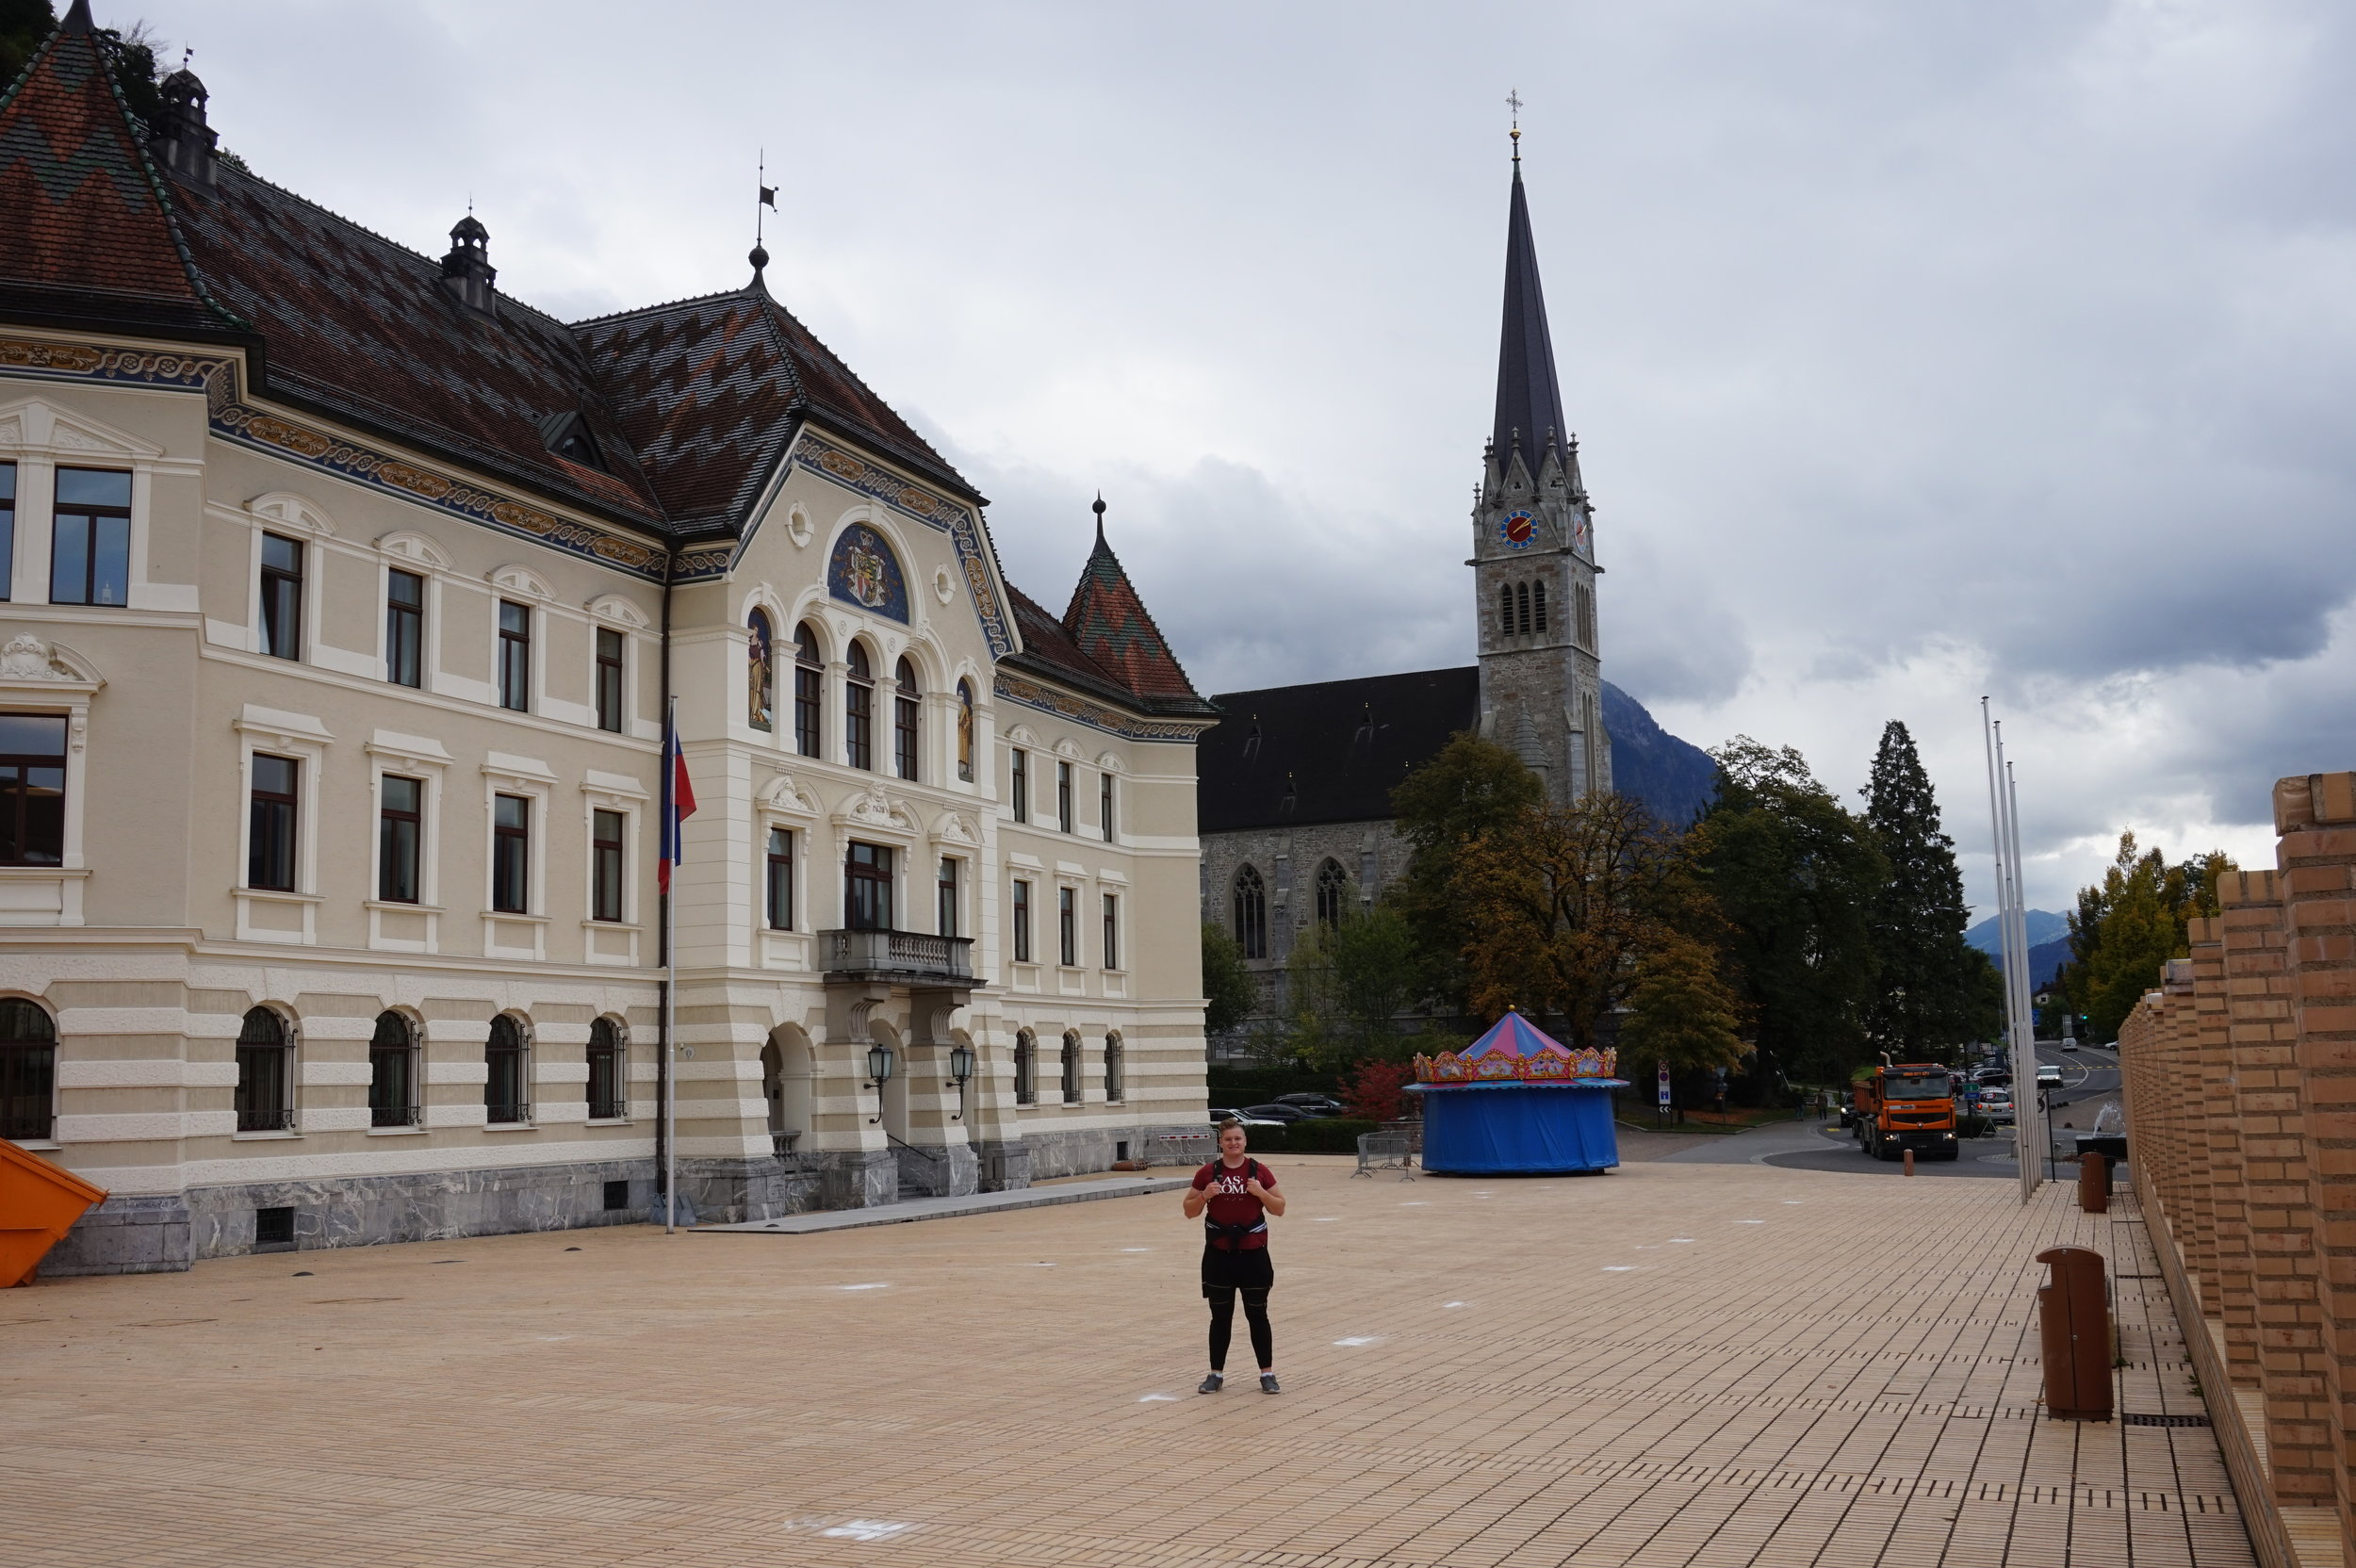 Getting a photo in Vaduz, Liechtenstein.